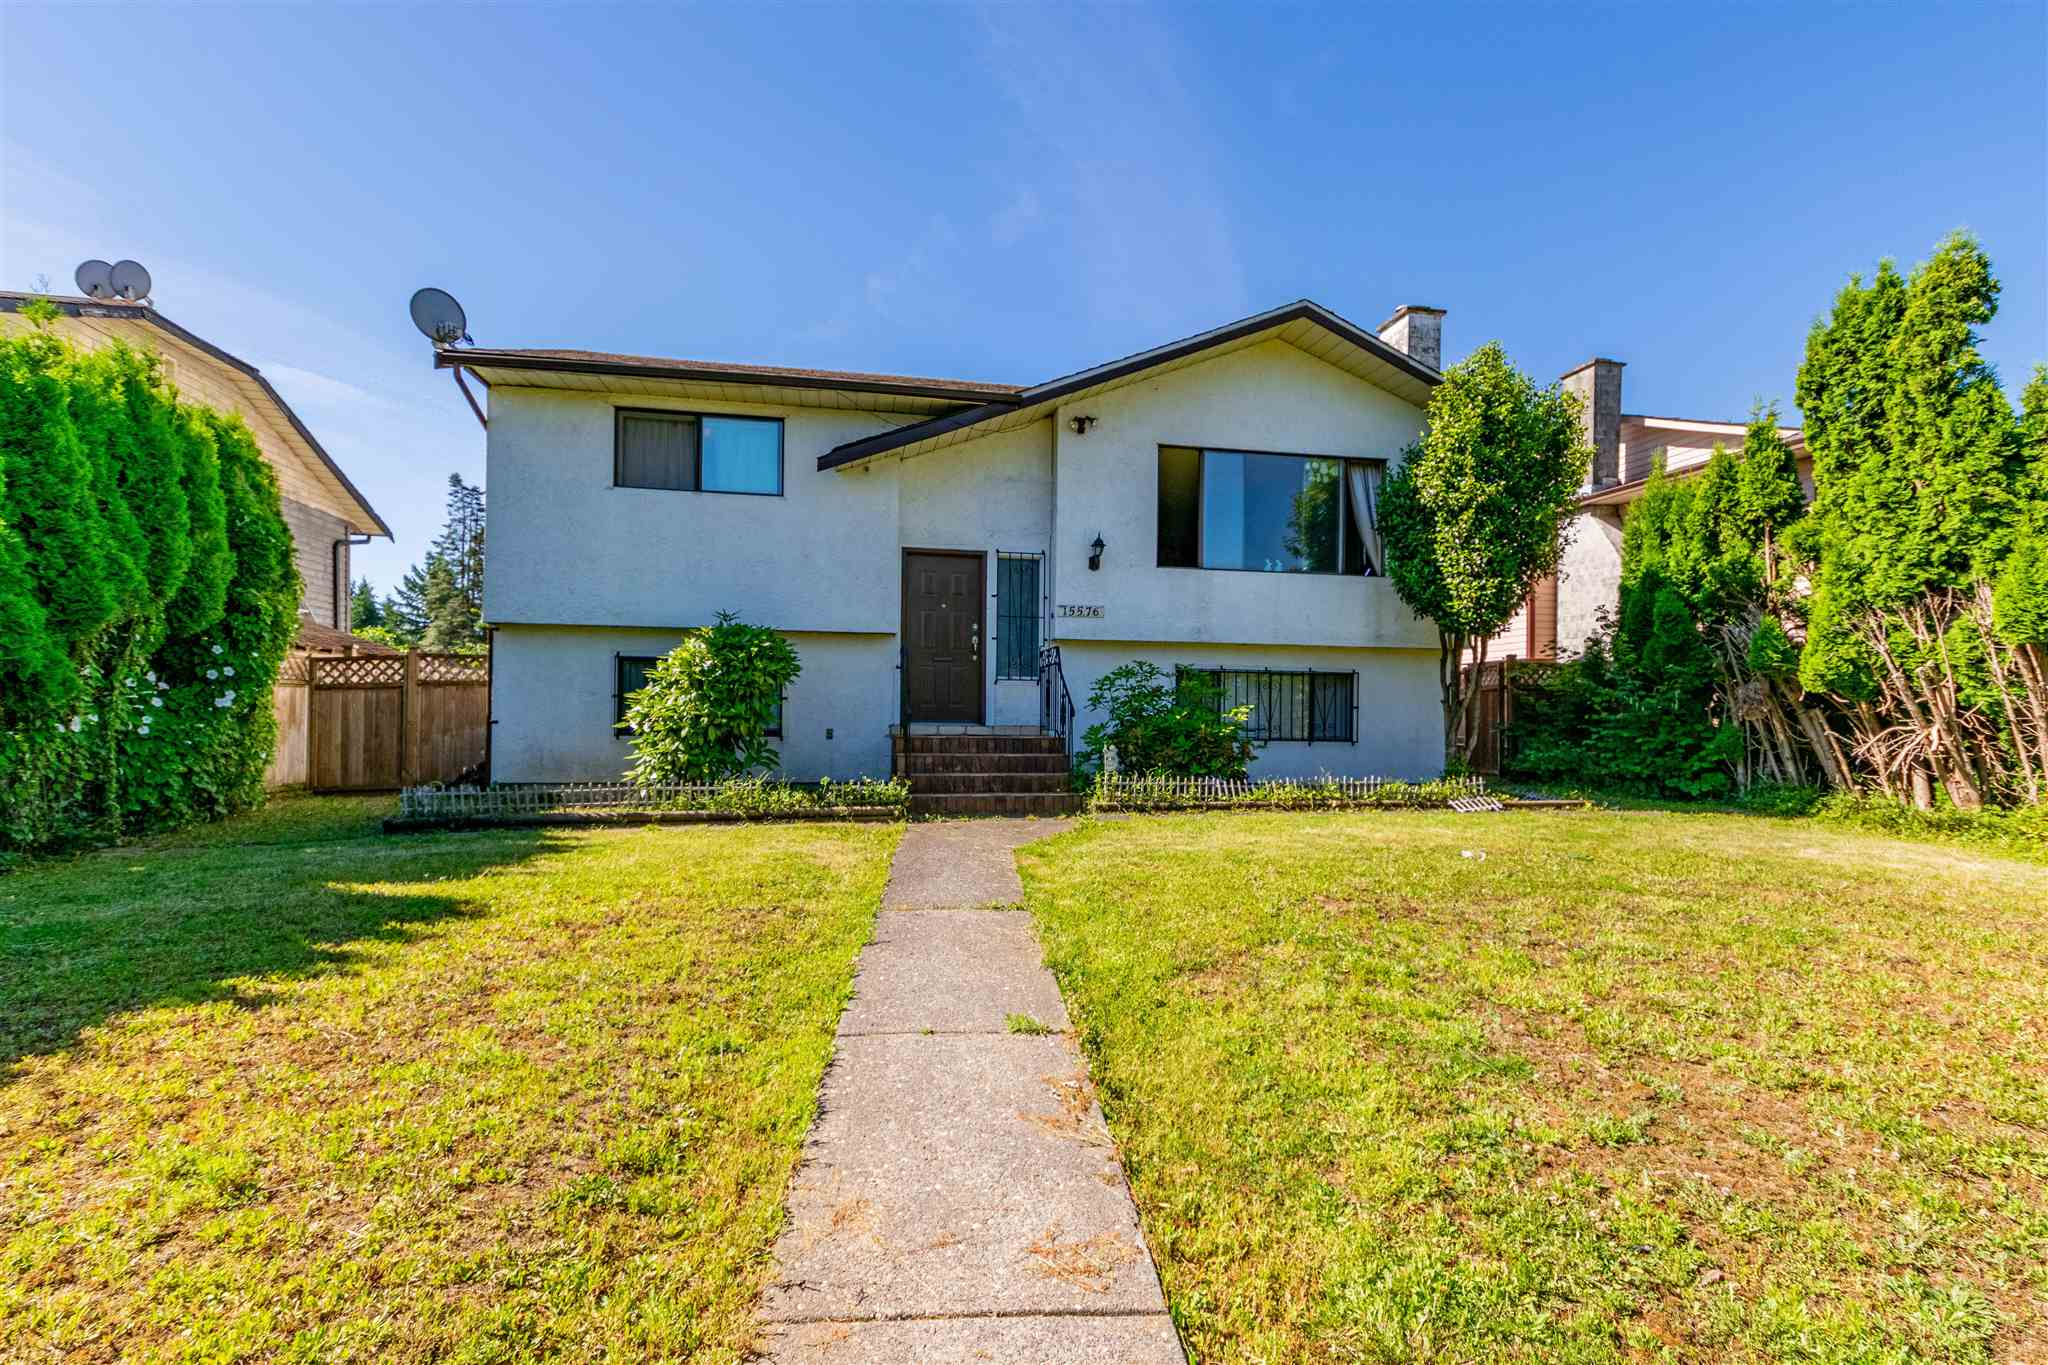 15576 100 AVENUE - Guildford House/Single Family for sale, 4 Bedrooms (R2601475)